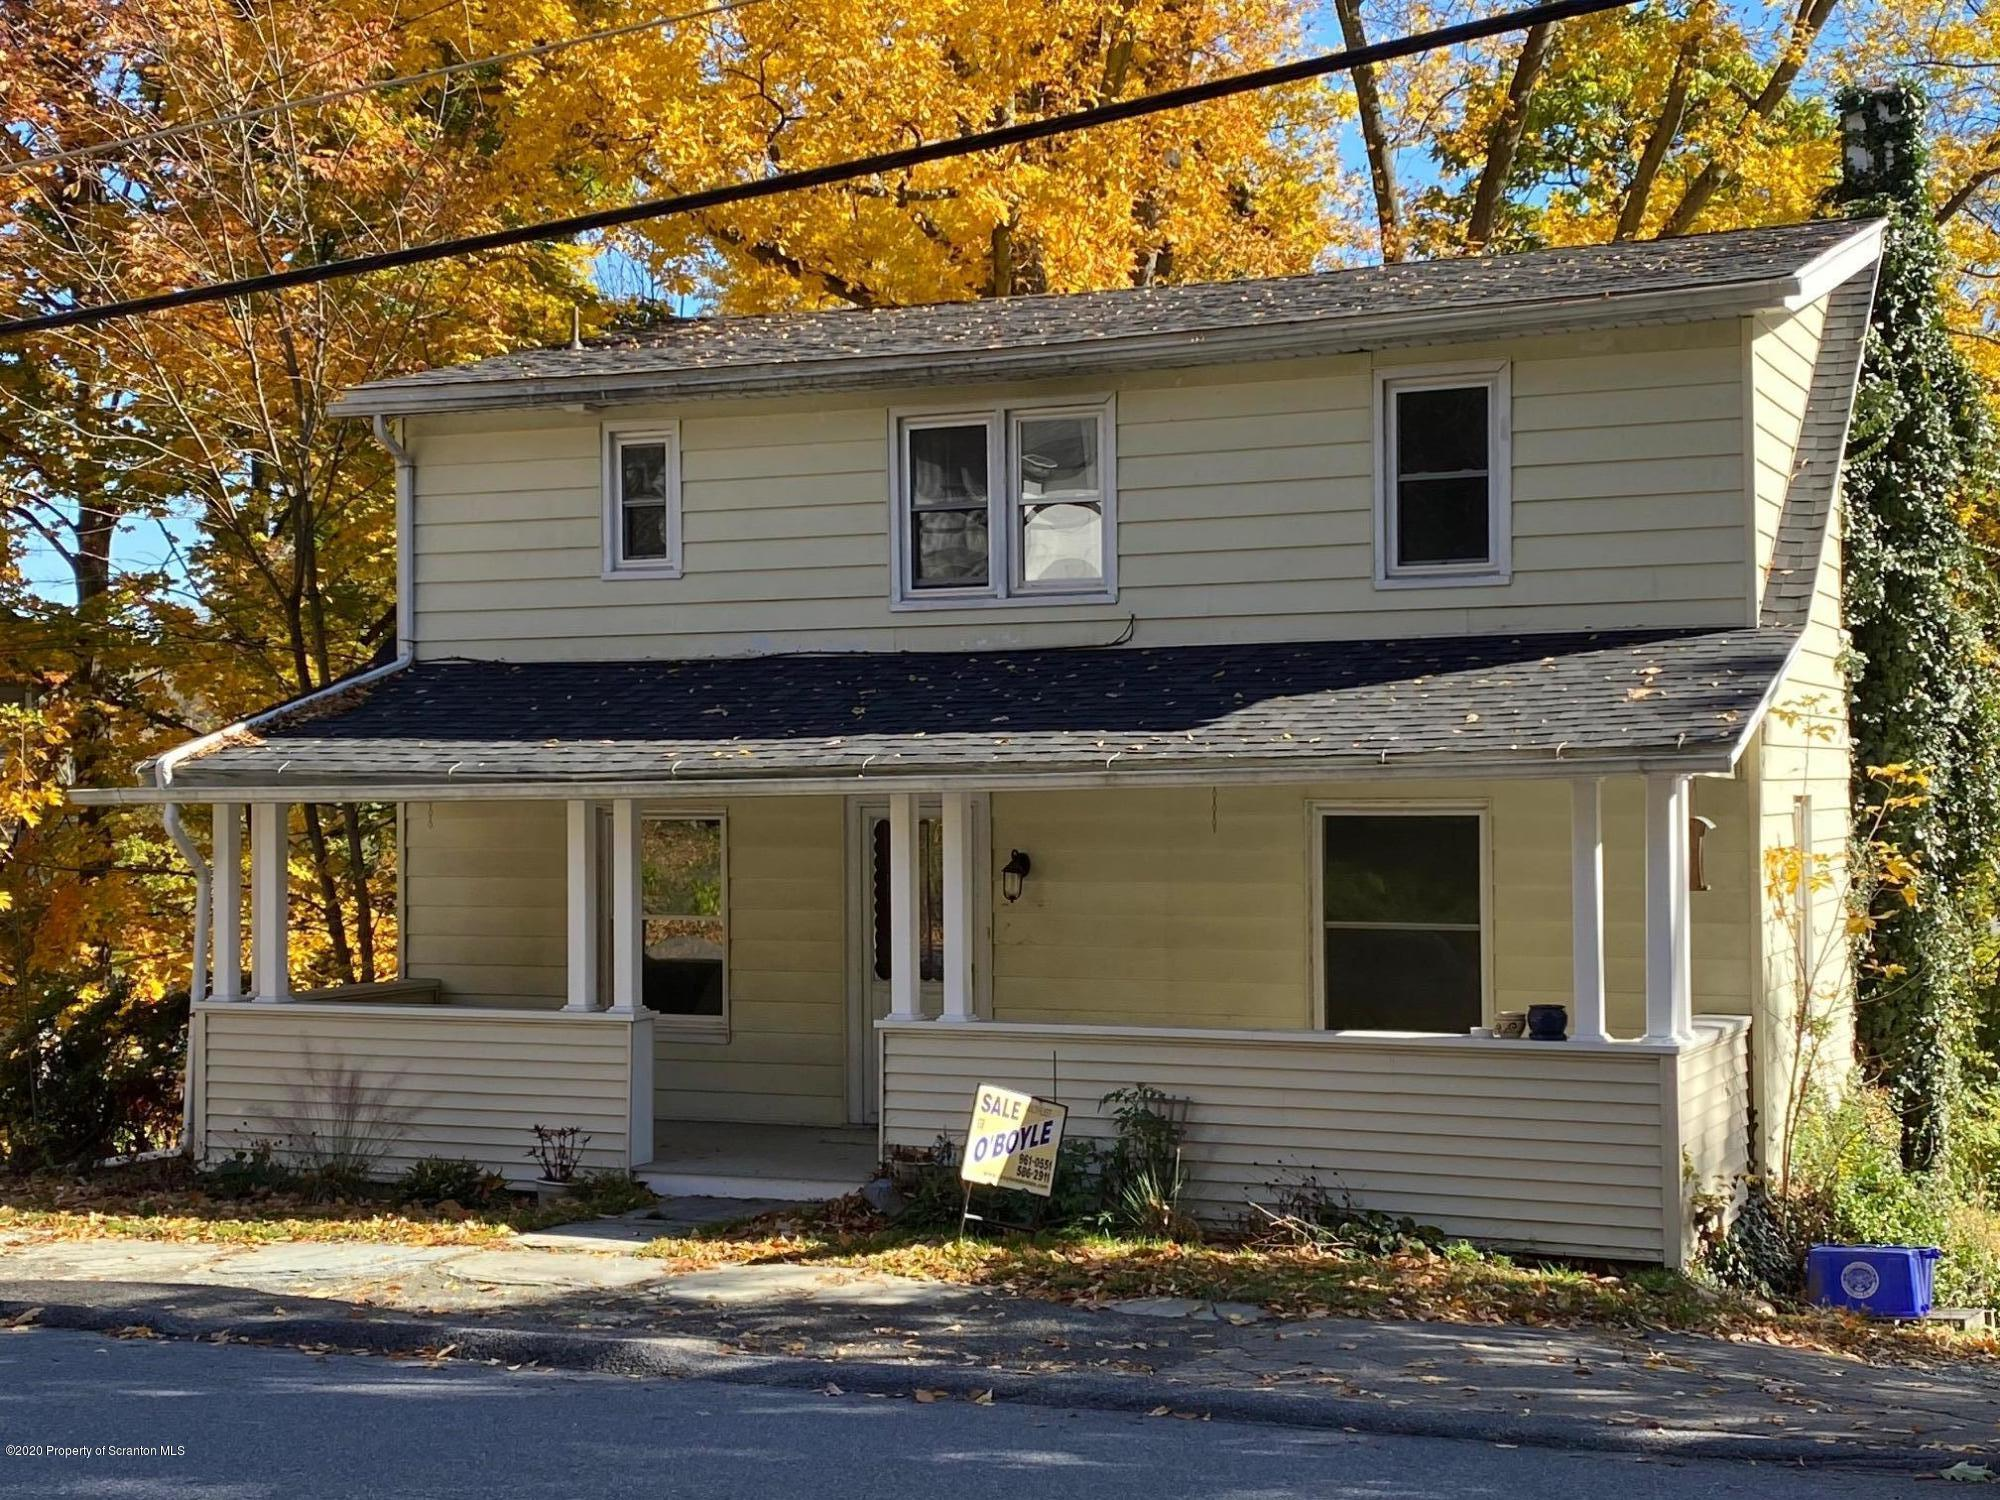 513 Center St, Clarks Summit, Pennsylvania 18411, 3 Bedrooms Bedrooms, 5 Rooms Rooms,1 BathroomBathrooms,Rental,For Lease,Center,20-4451